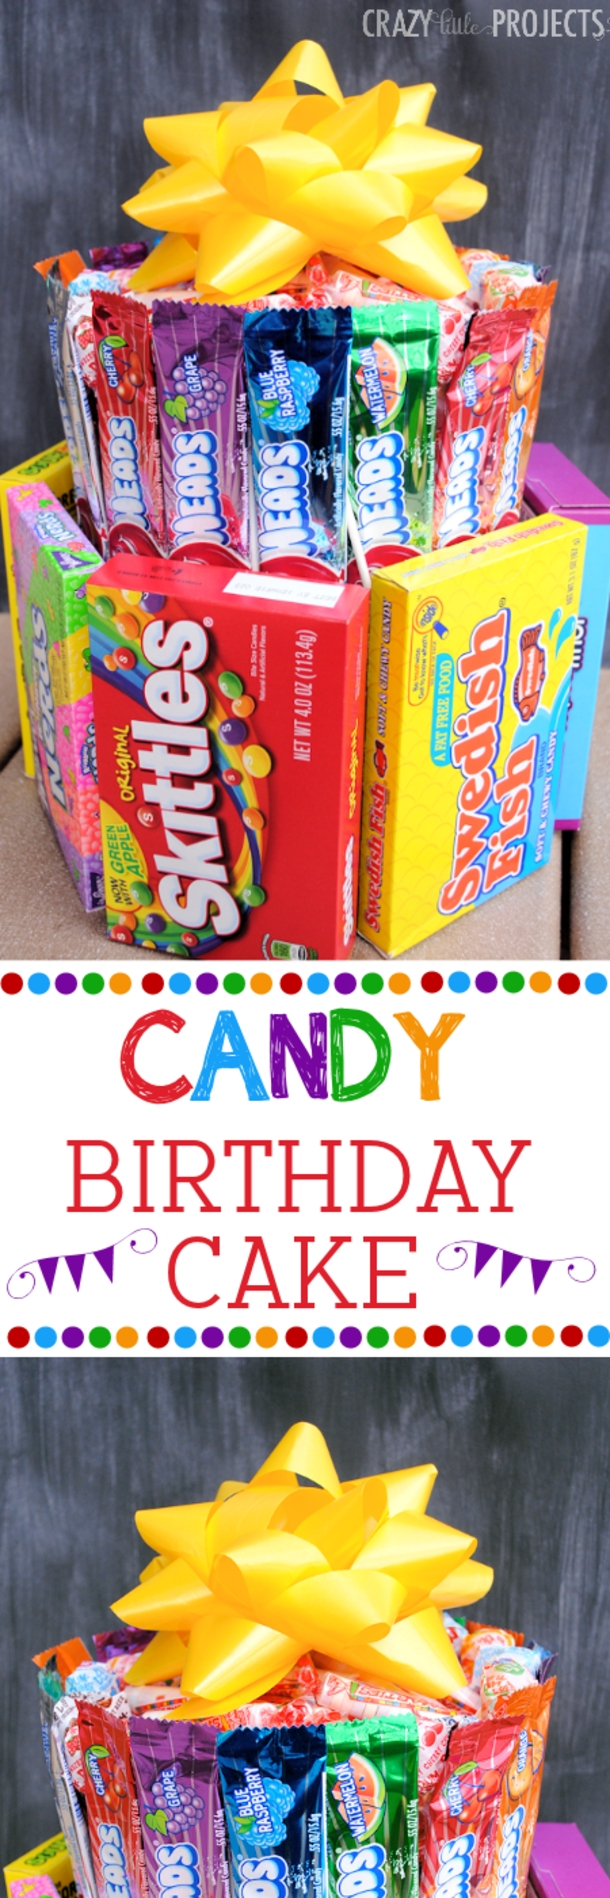 16th Birthday Gift Ideas For Best Friend Diy Bestchristmasgifts Co